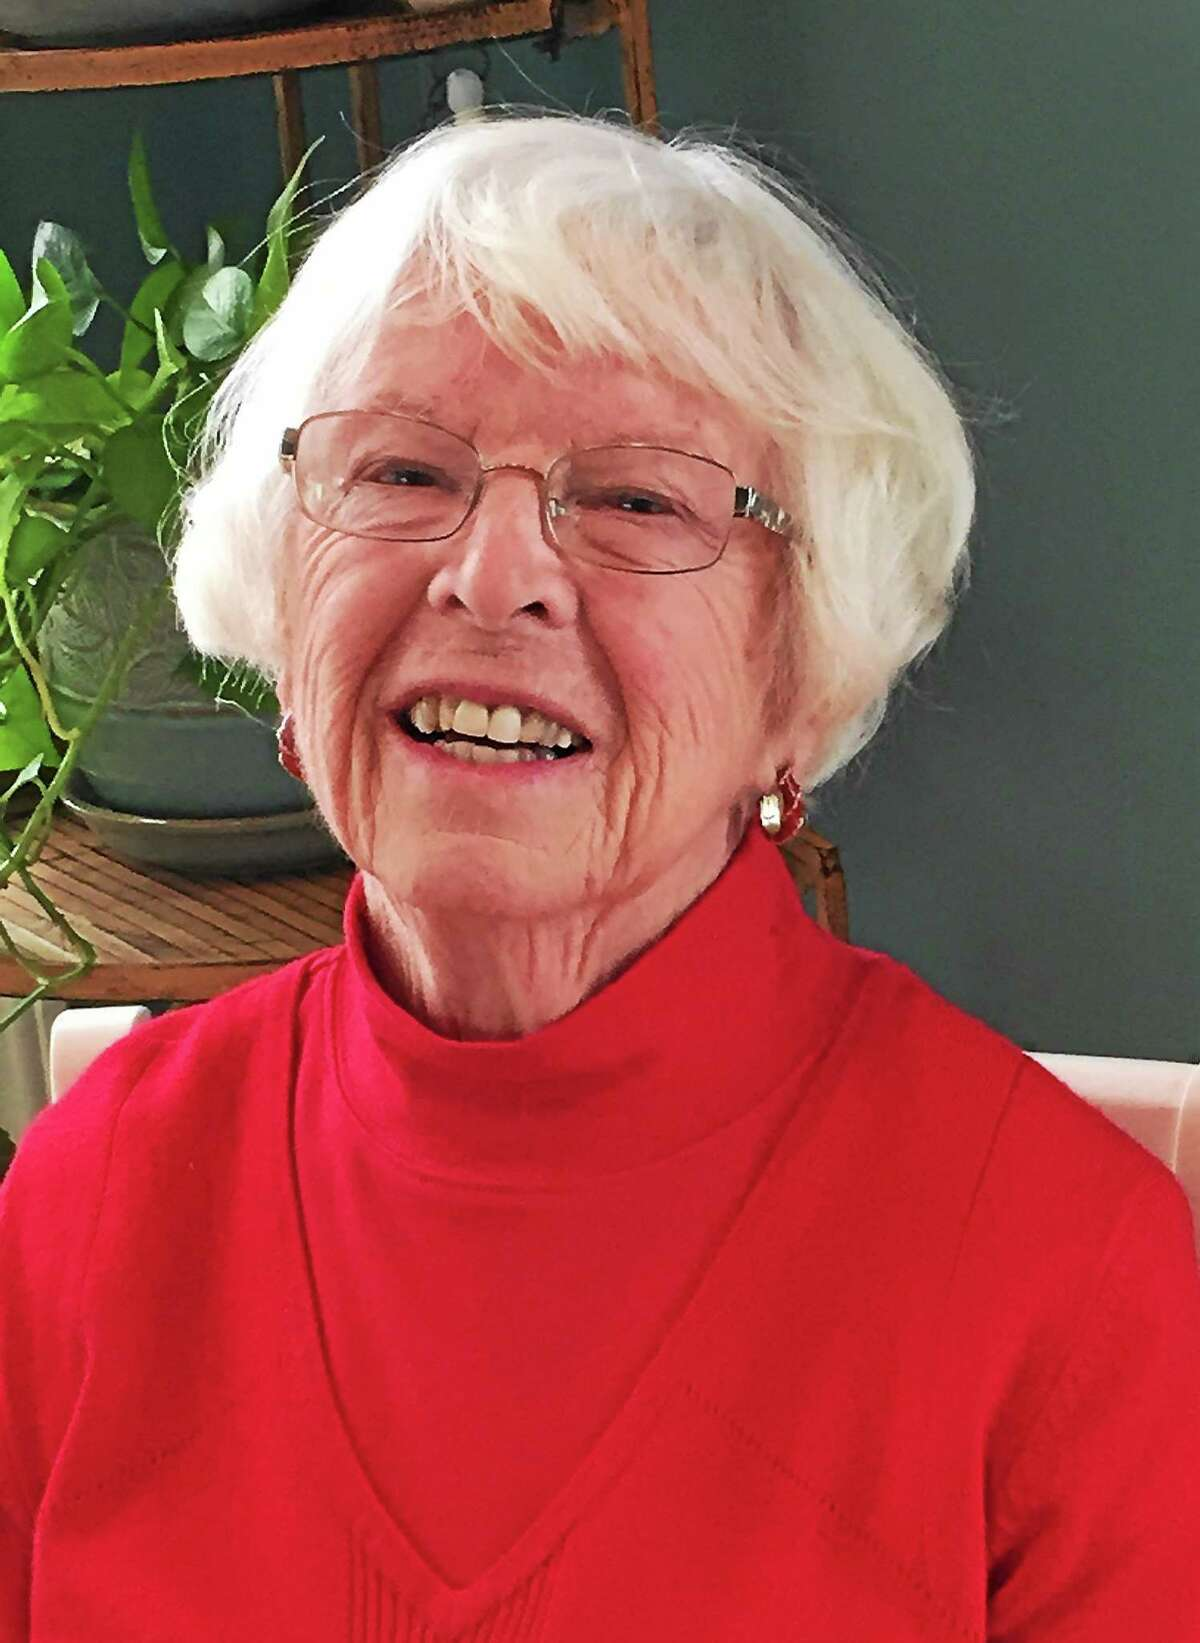 The Cromwell Junior Women's Club has honored Jean Tatro, a lifelong resident and a years-long volunteer throughout town, as woman of the year.